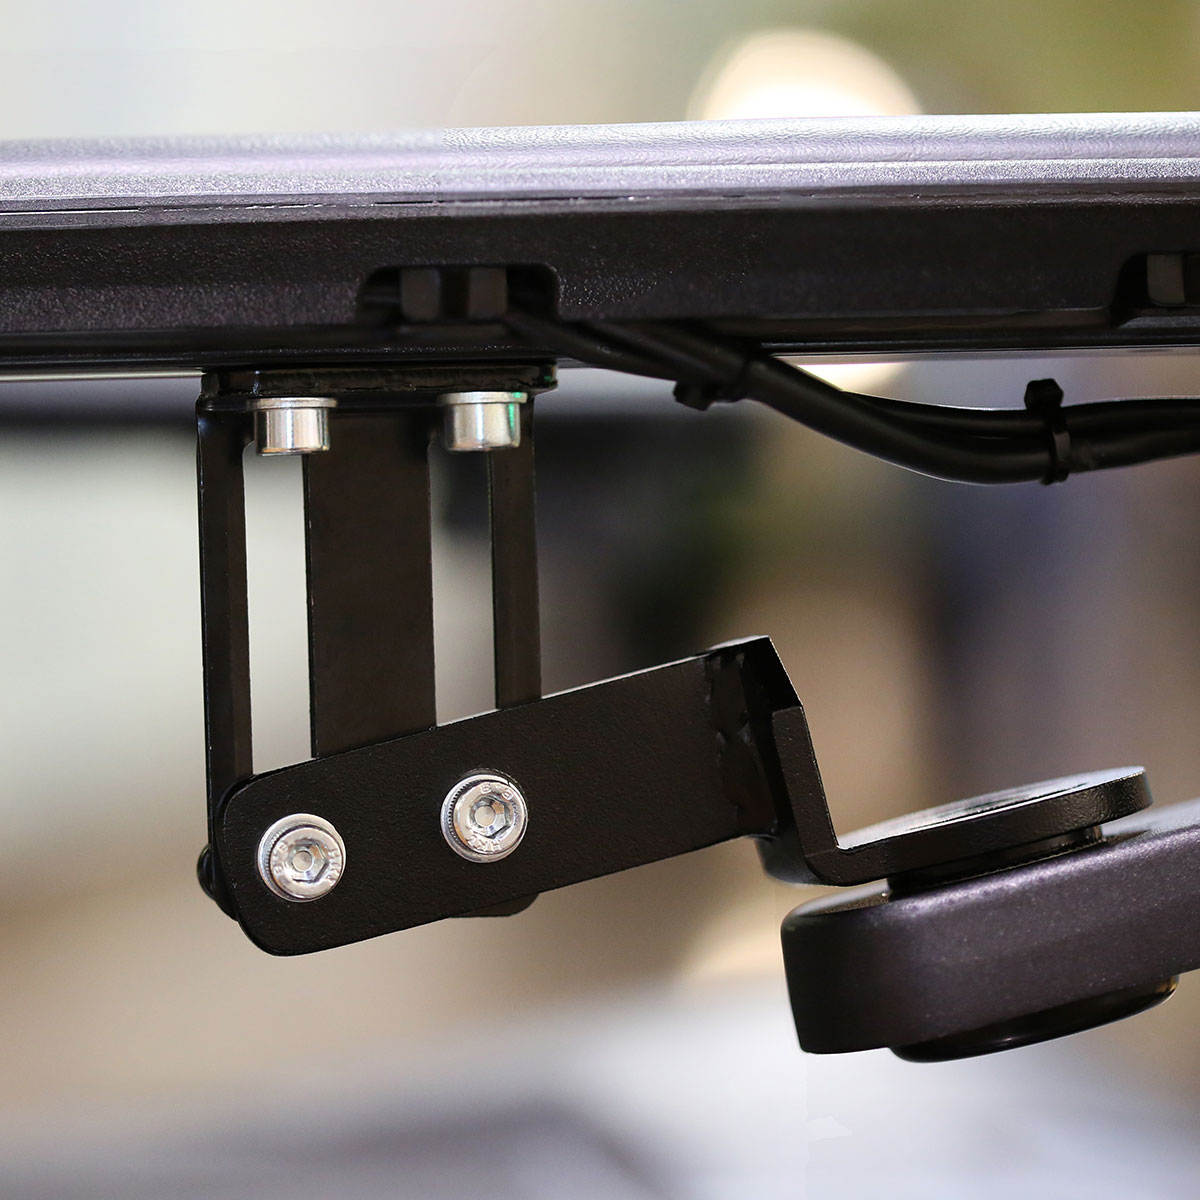 An Adjustable Mounts and Height Bracket